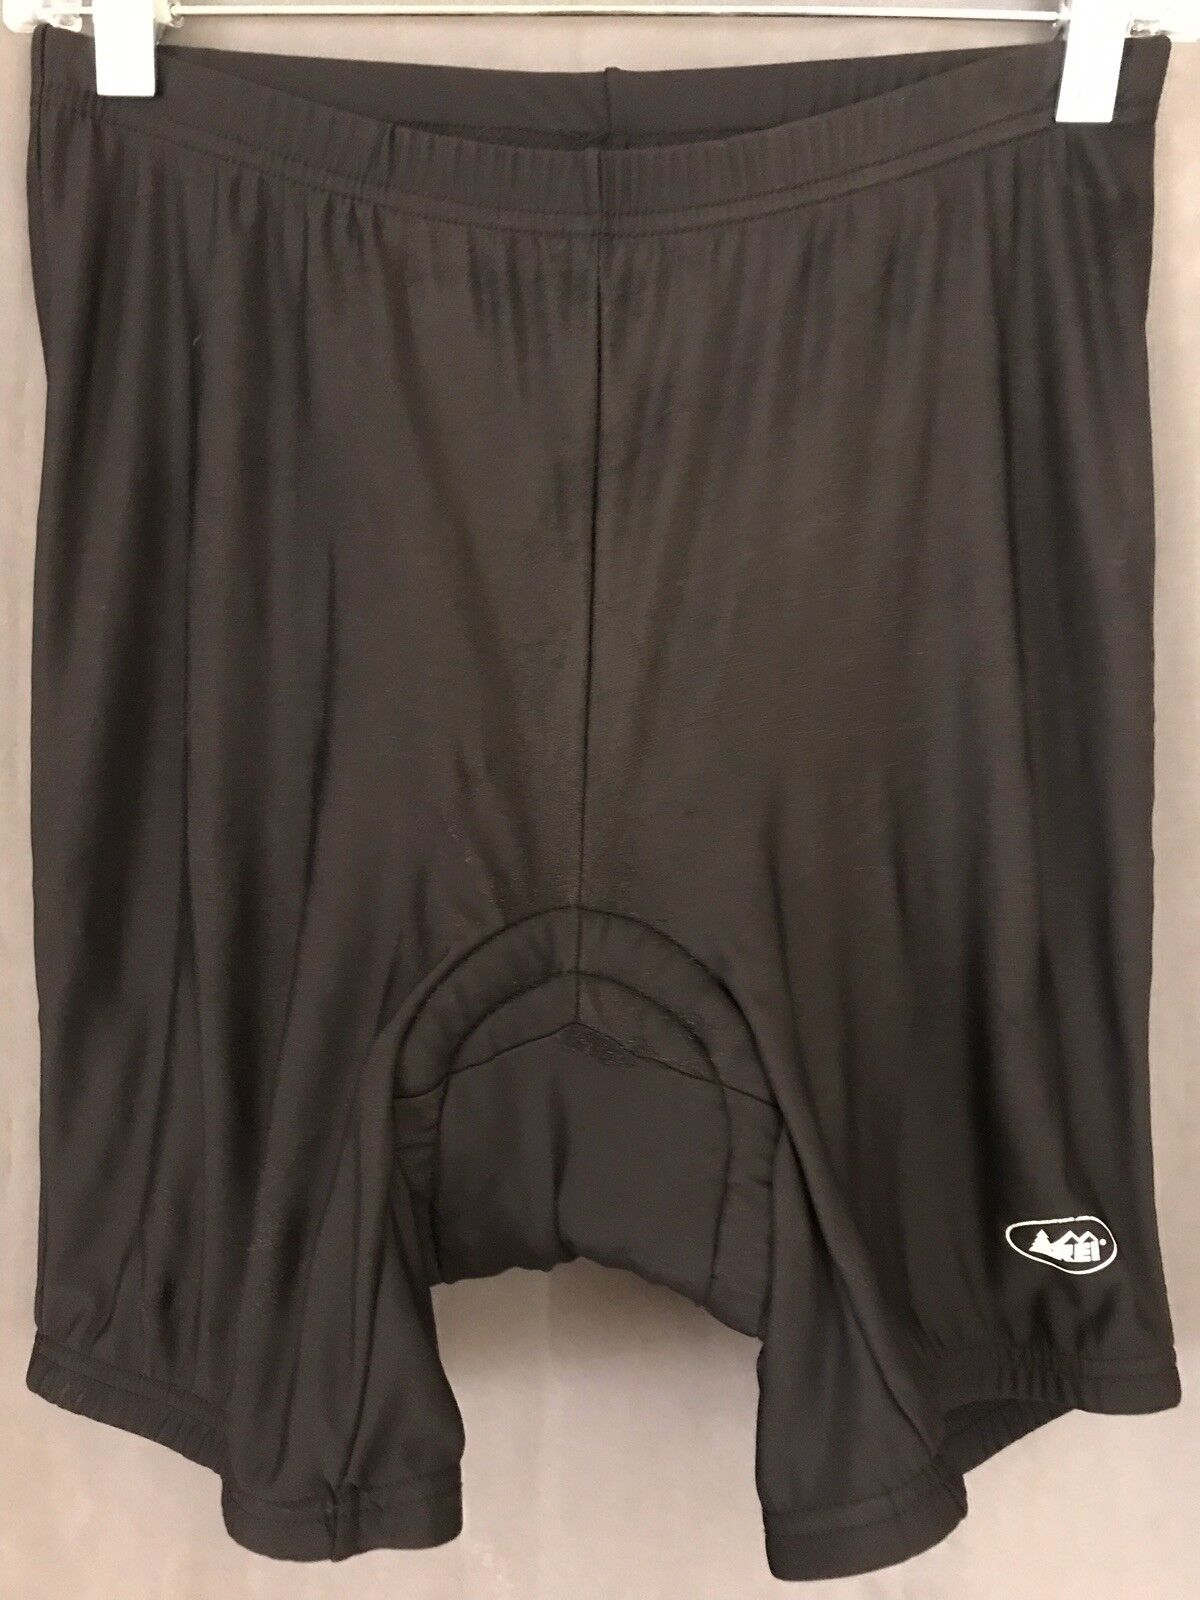 Vintage 90s REI Cycle Shorts Padded Men's Size Large Crafted in San Francisco CA